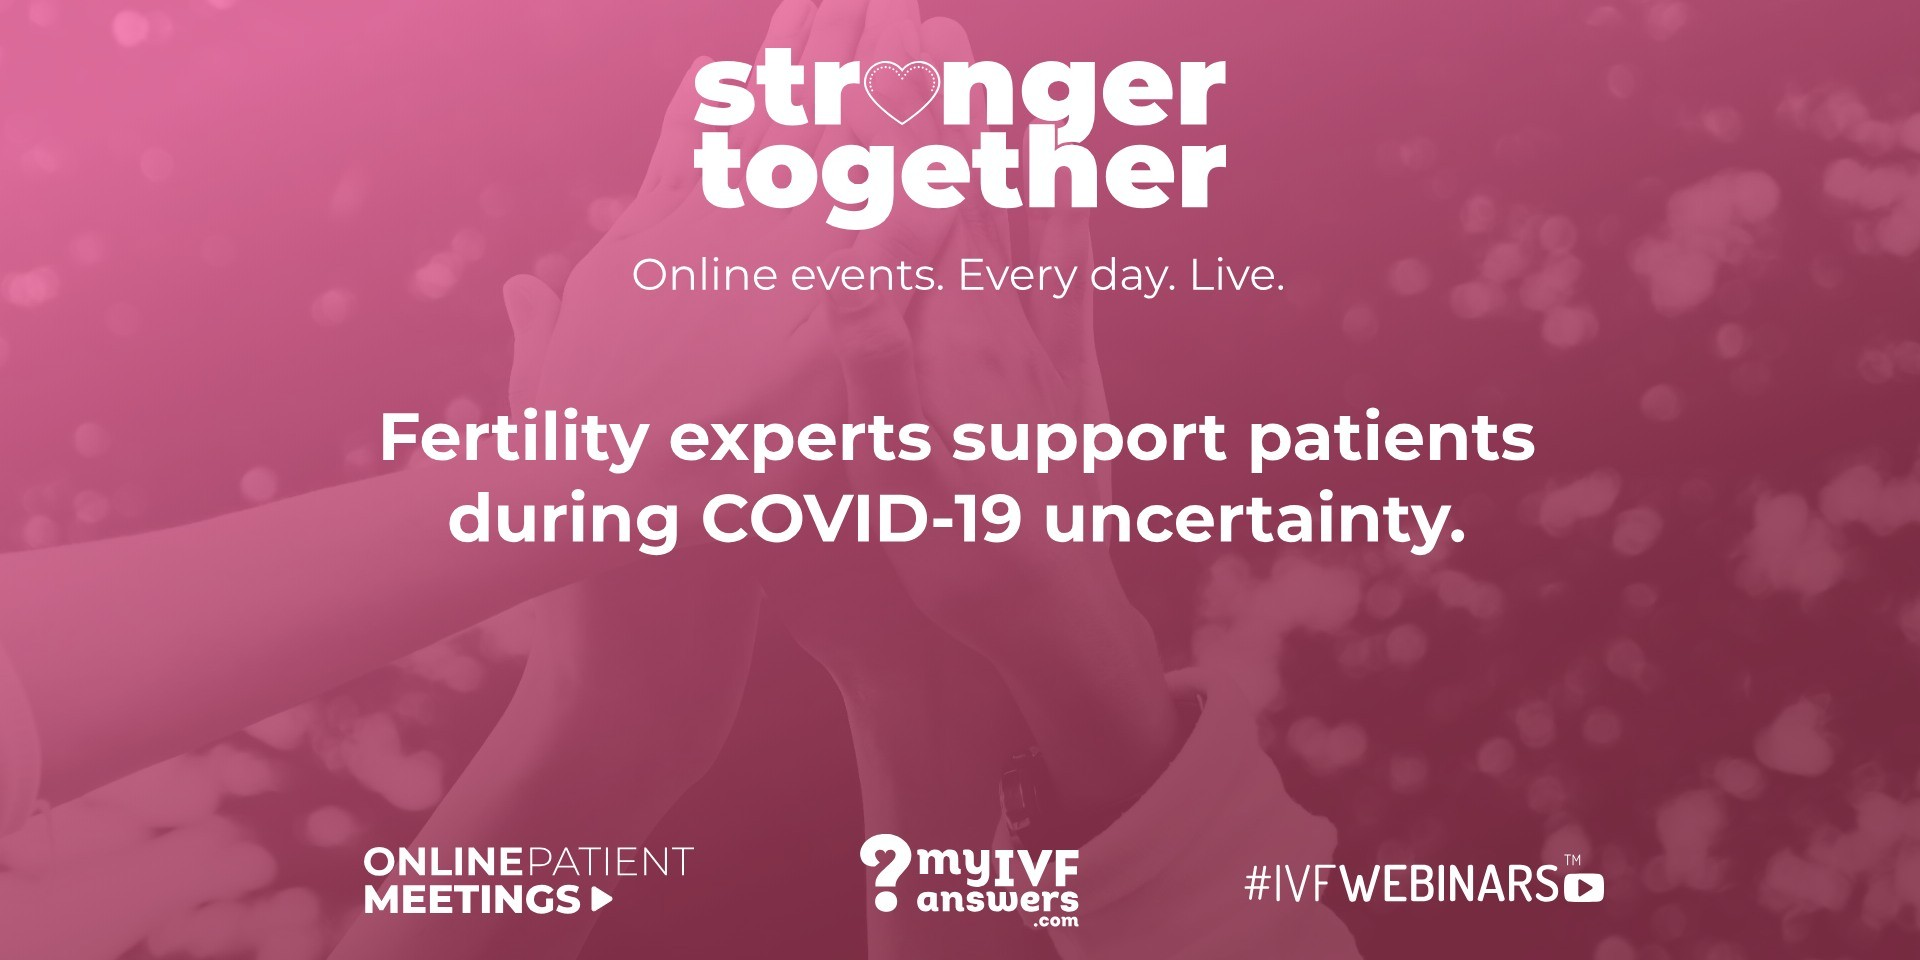 #StrongerTogether - IVF support for patients